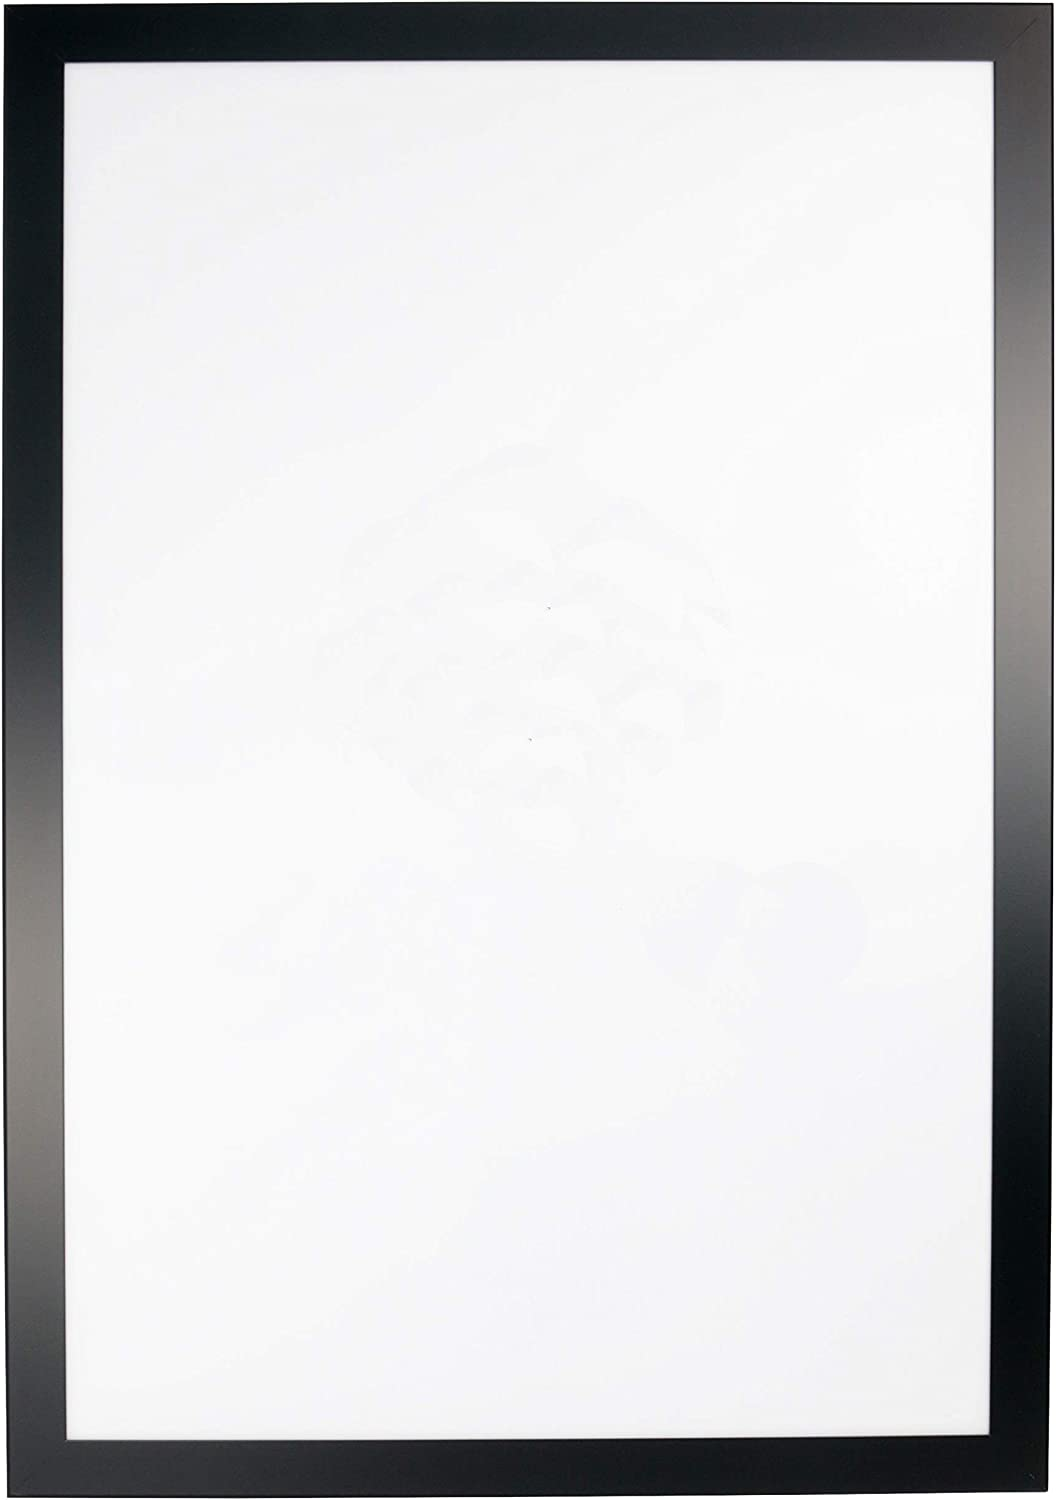 Deco Snap Frame 27x40 Inches, 1.57inch Aluminum Profile, Front-Loading Snap Black Frame, Movie Poster Frame, Wall Mounting, Picture Frame 1440B (Black)